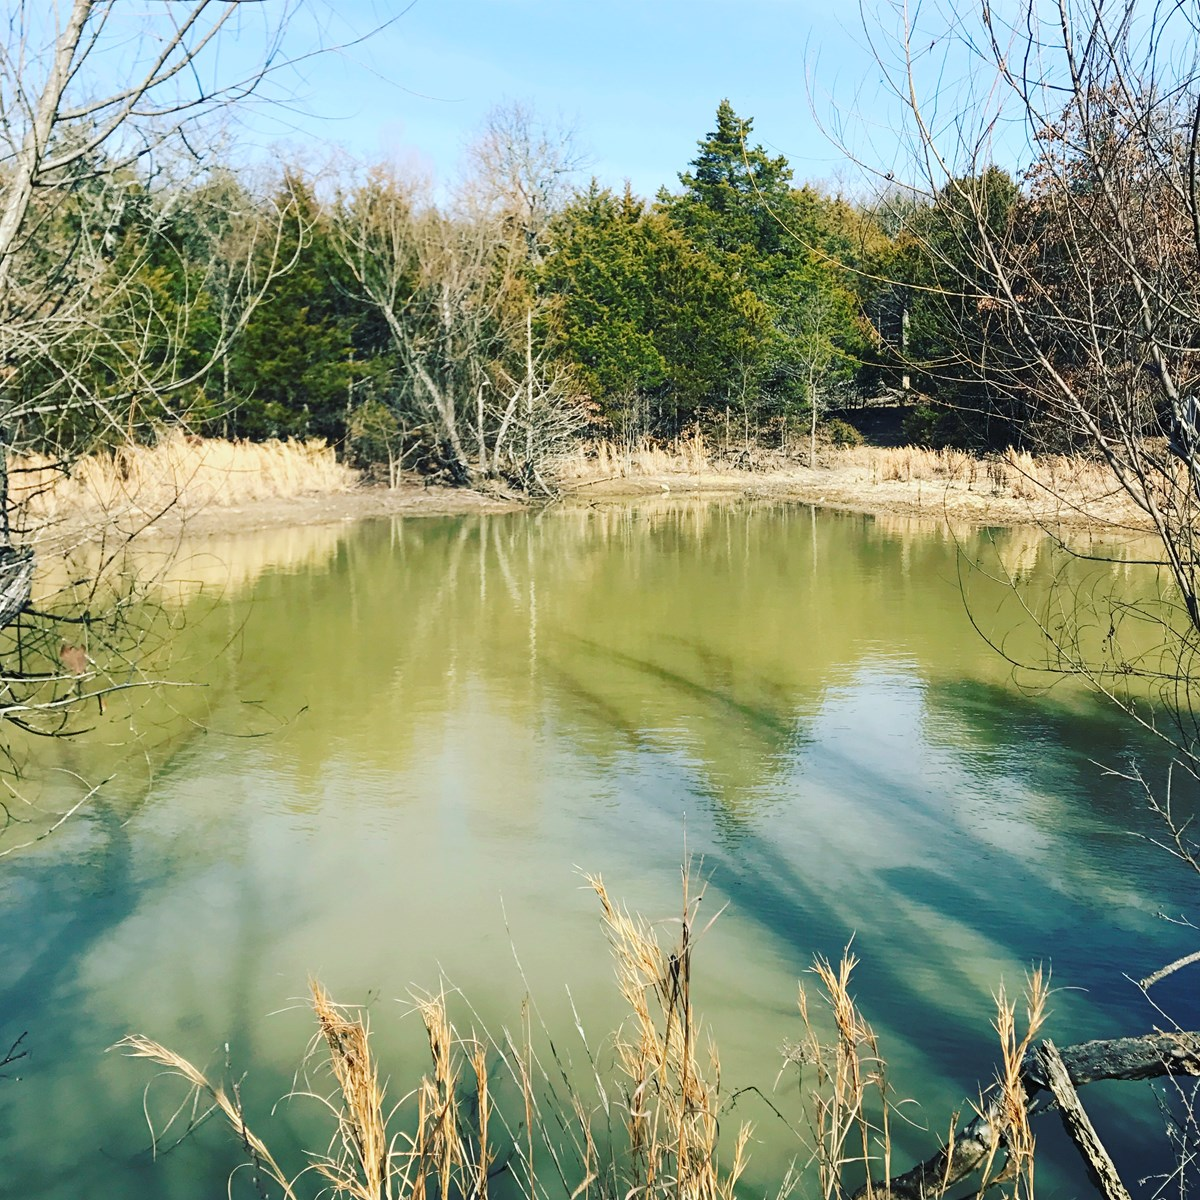 40+/- Acre Hunting Property with Cabin - Hughes County, Oklahoma